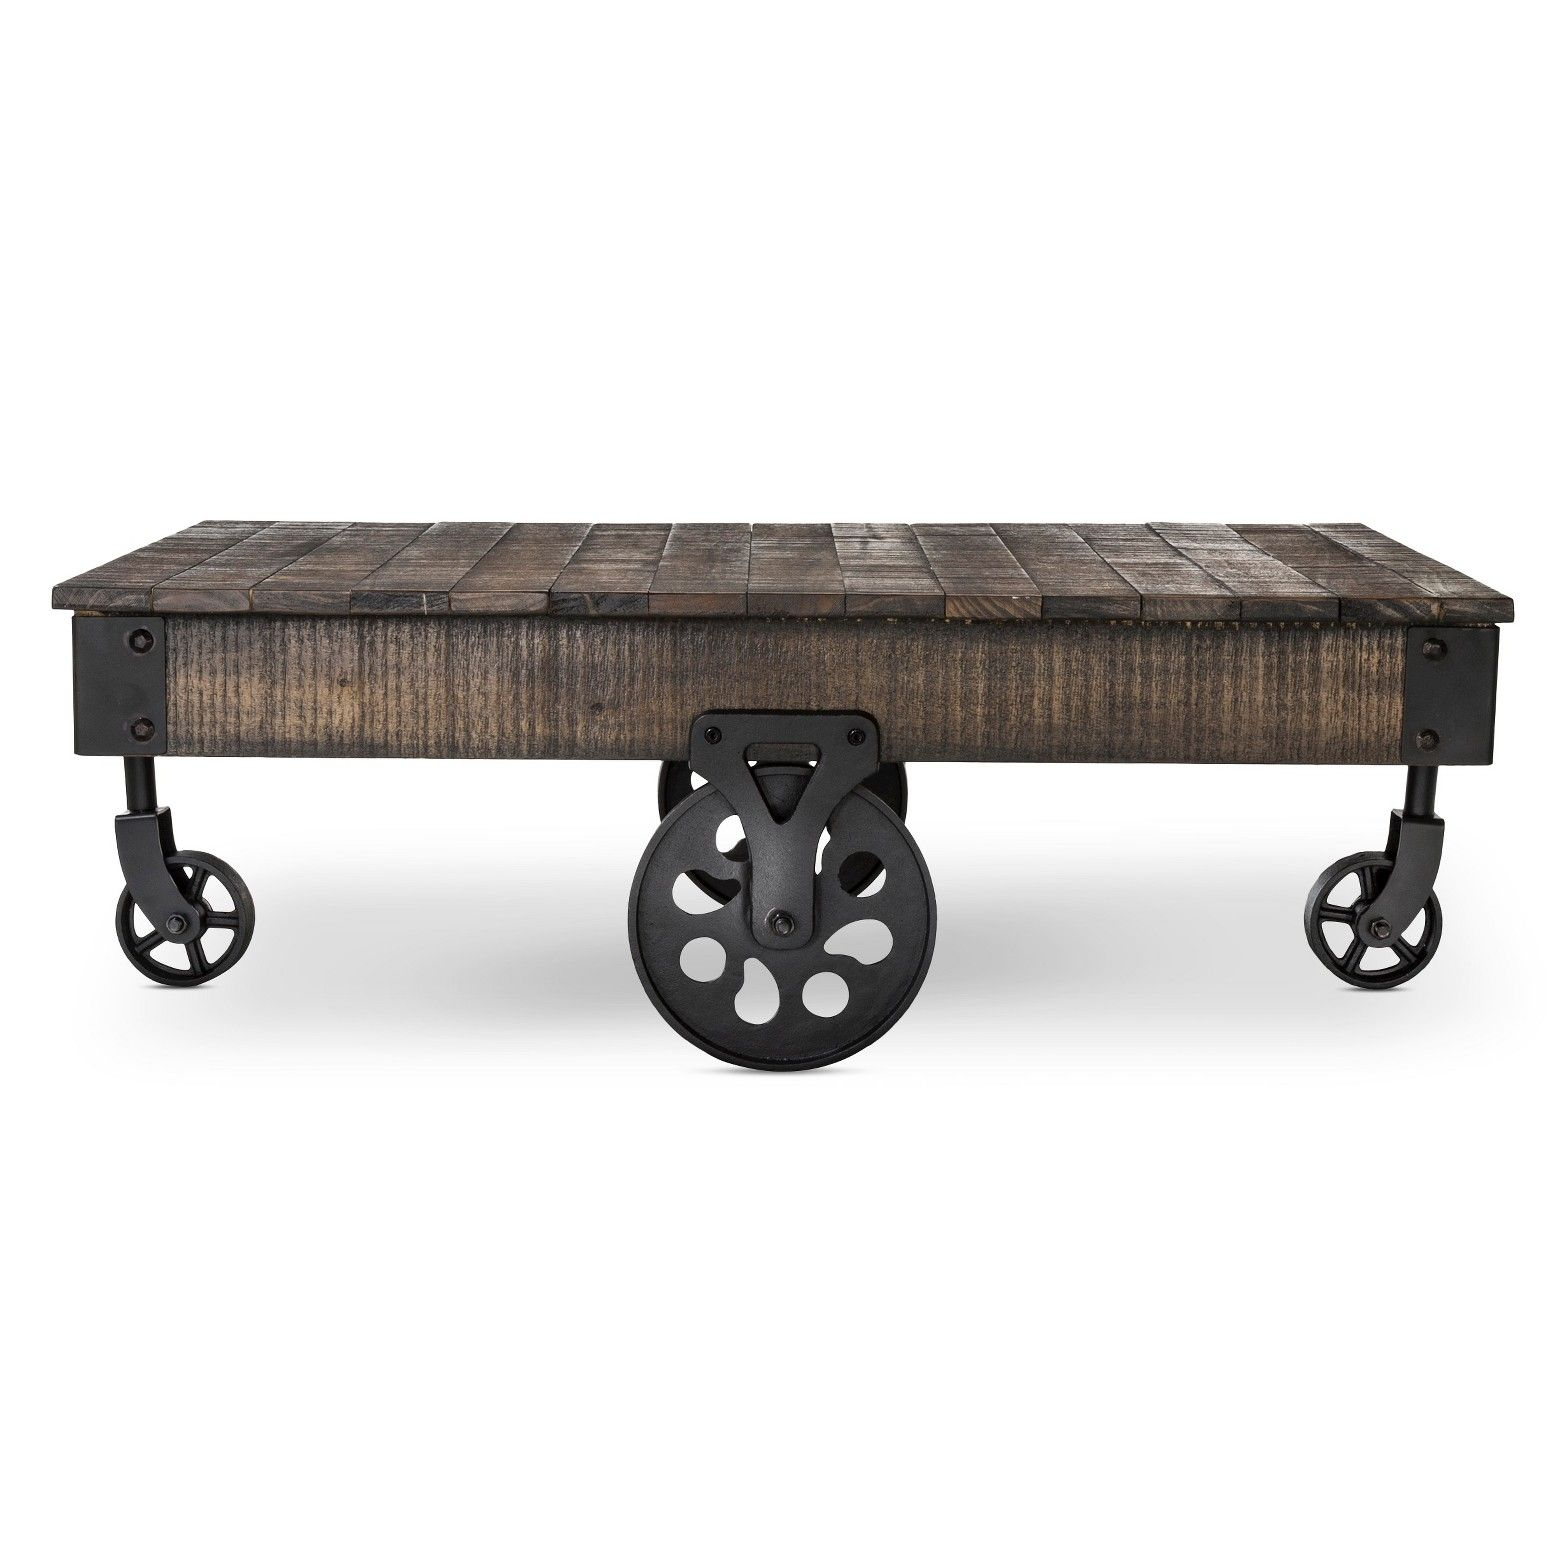 Mixed wood and metal • Industrial style The Bralton